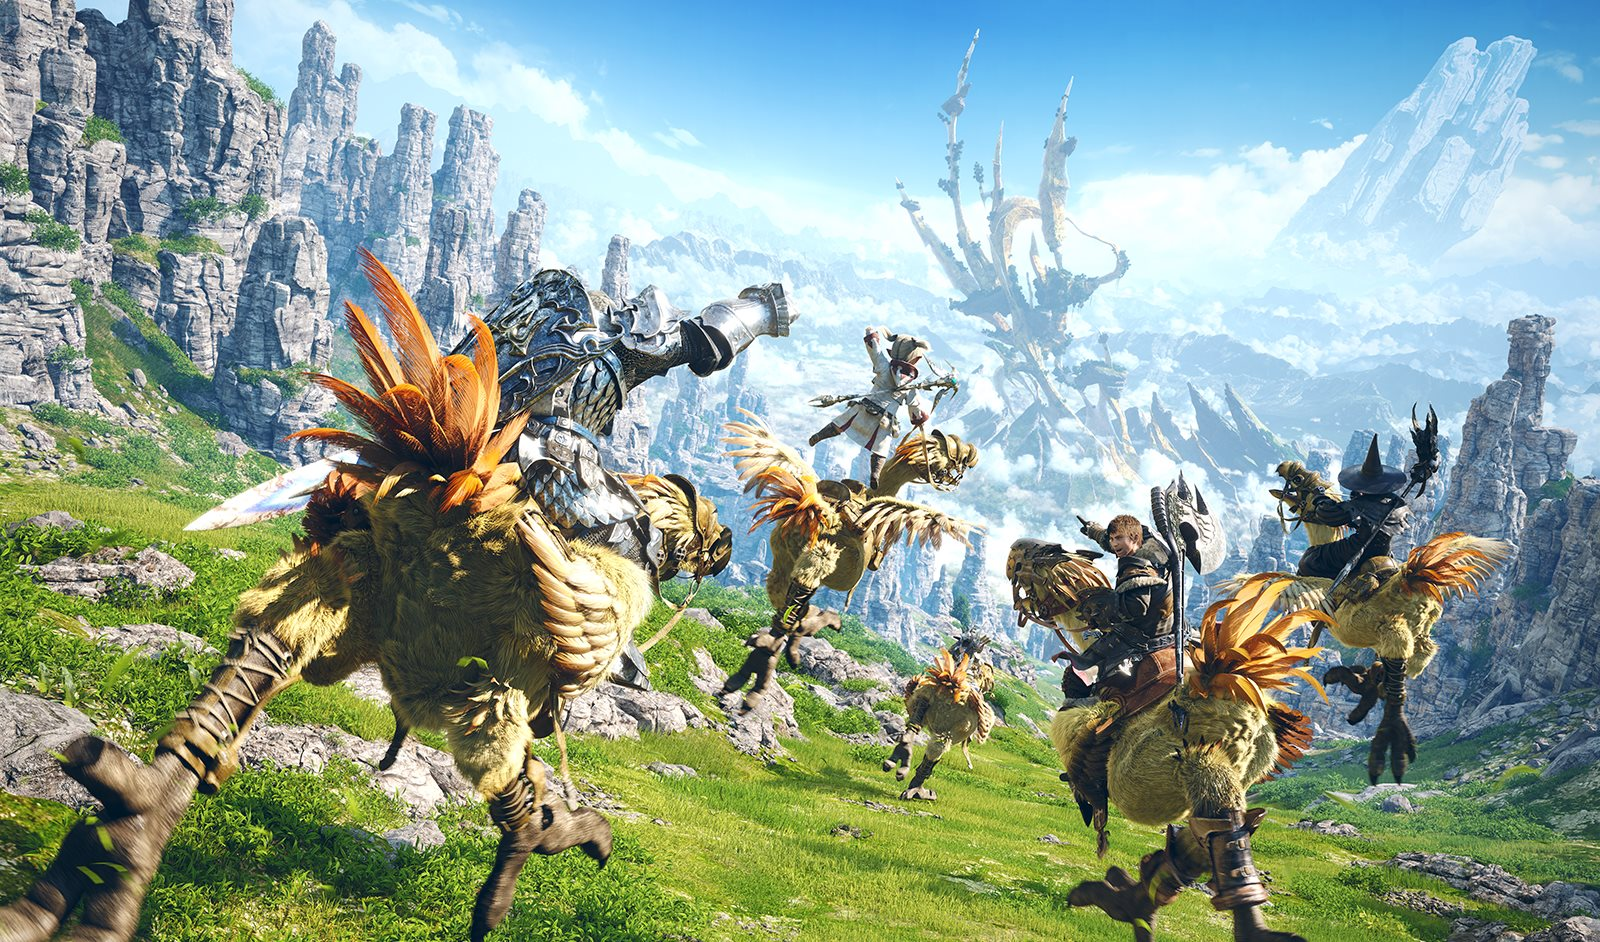 Final Fantasy 14: A Realm Reborn will launch on PS4 in April 2014